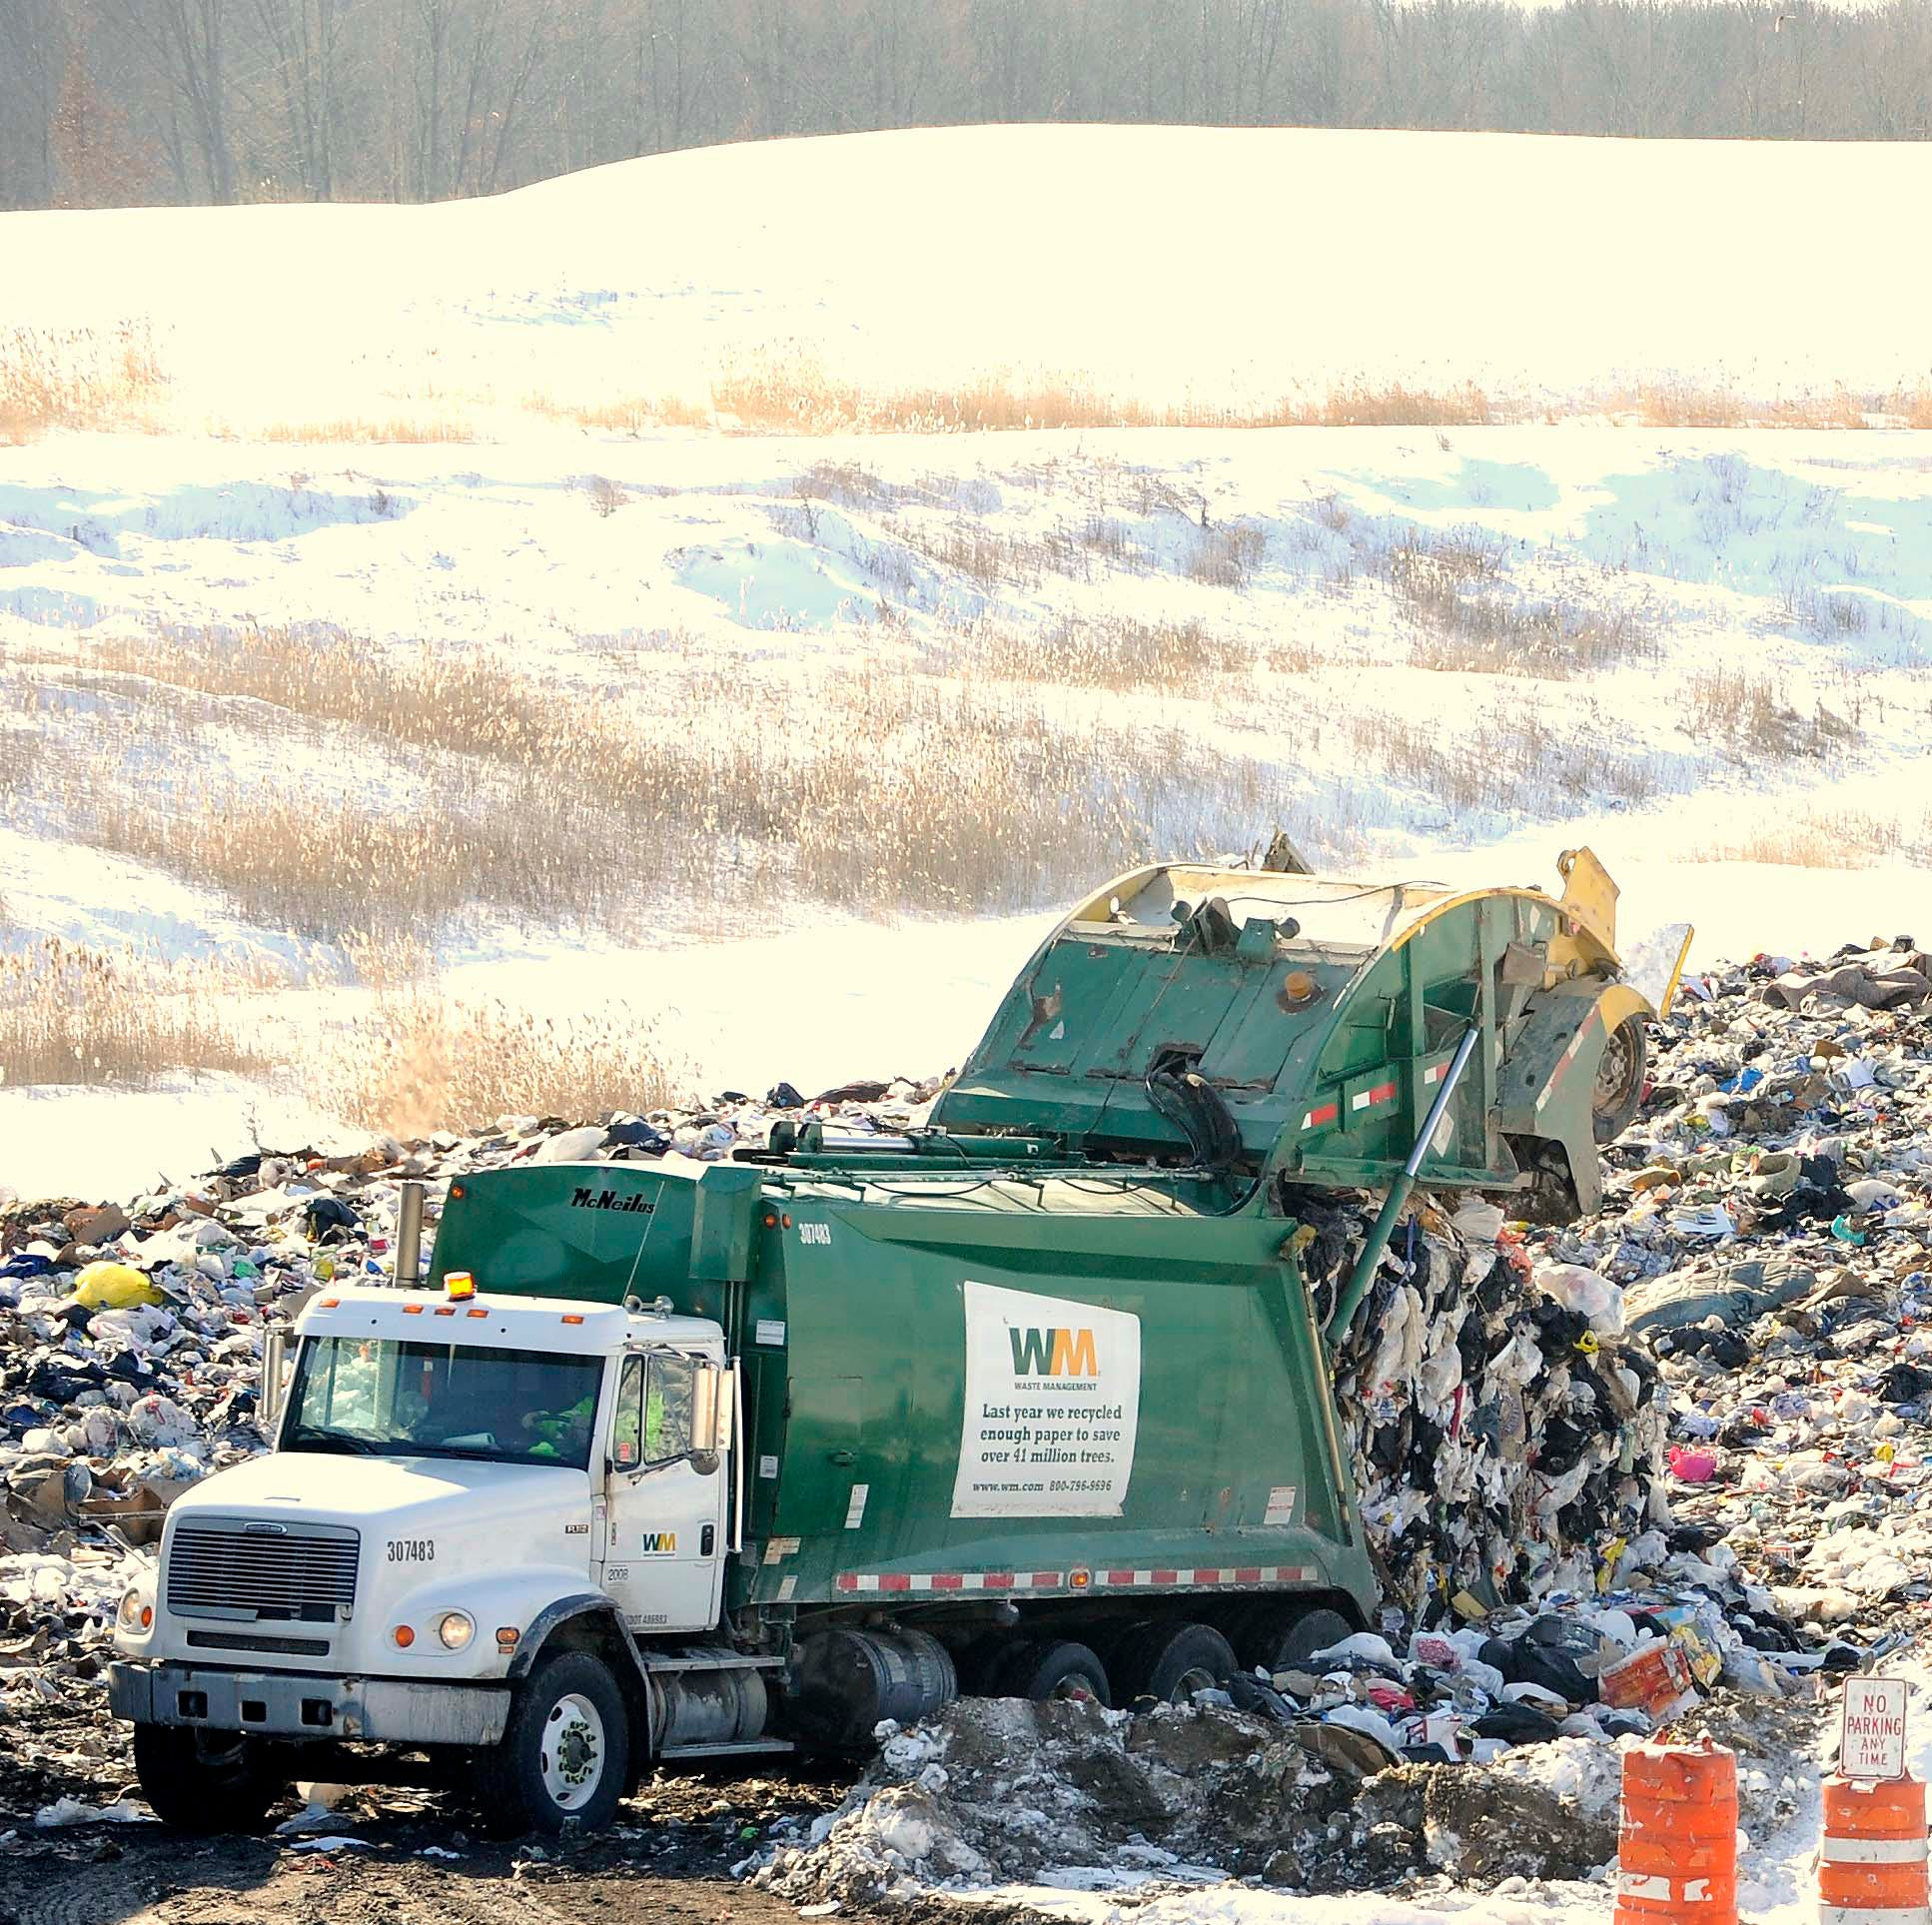 Opinion: Improving environmental infrastructure